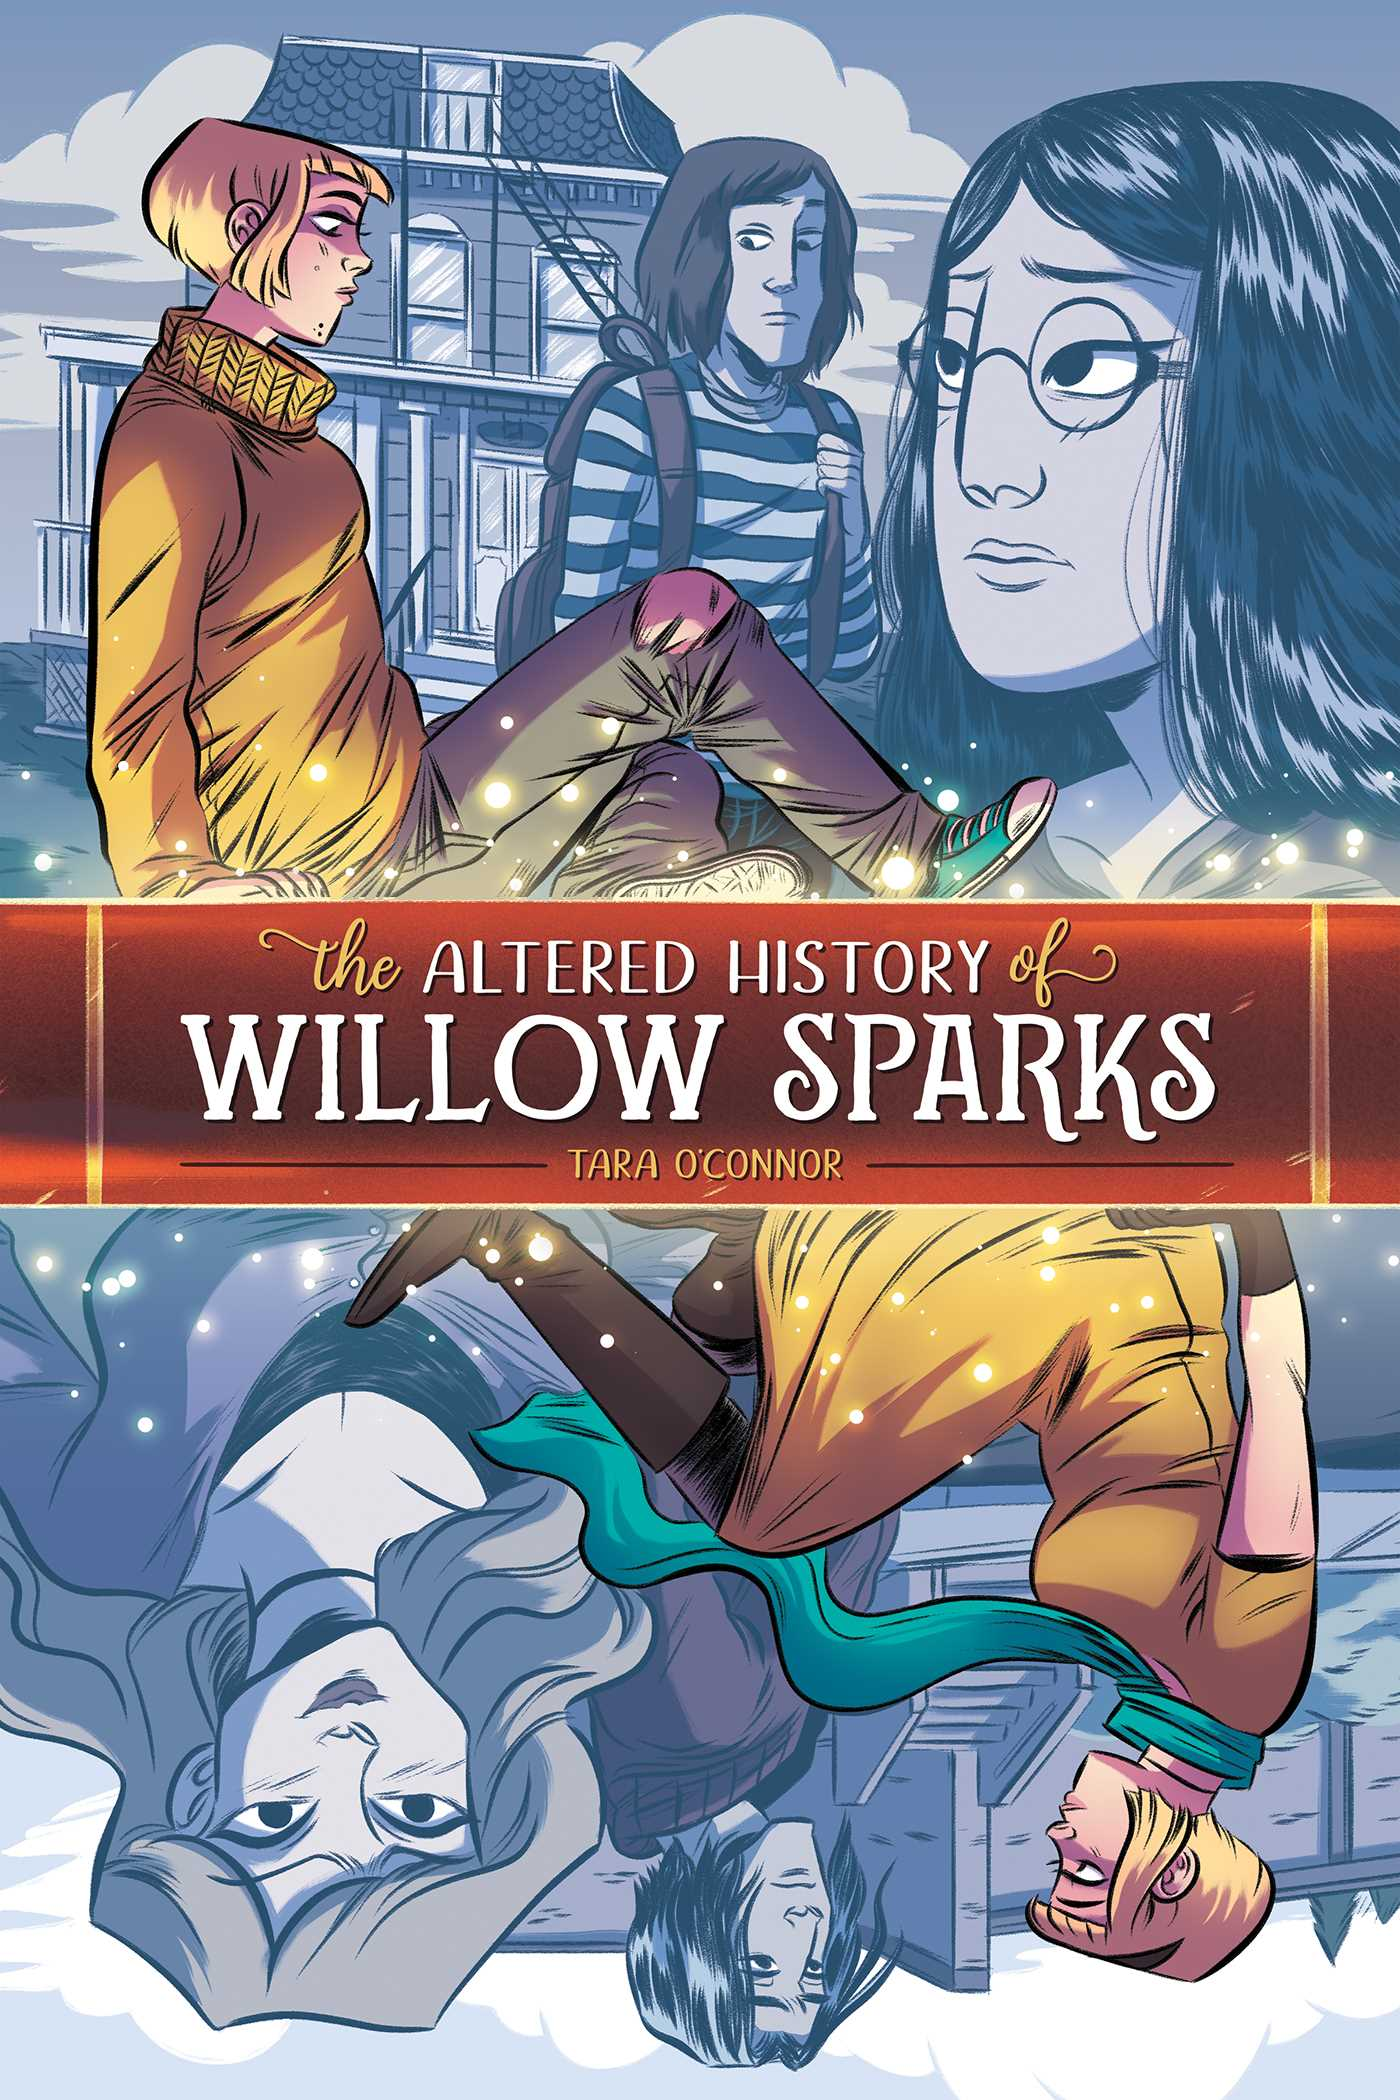 The altered history of willow sparks 9781620104507 hr